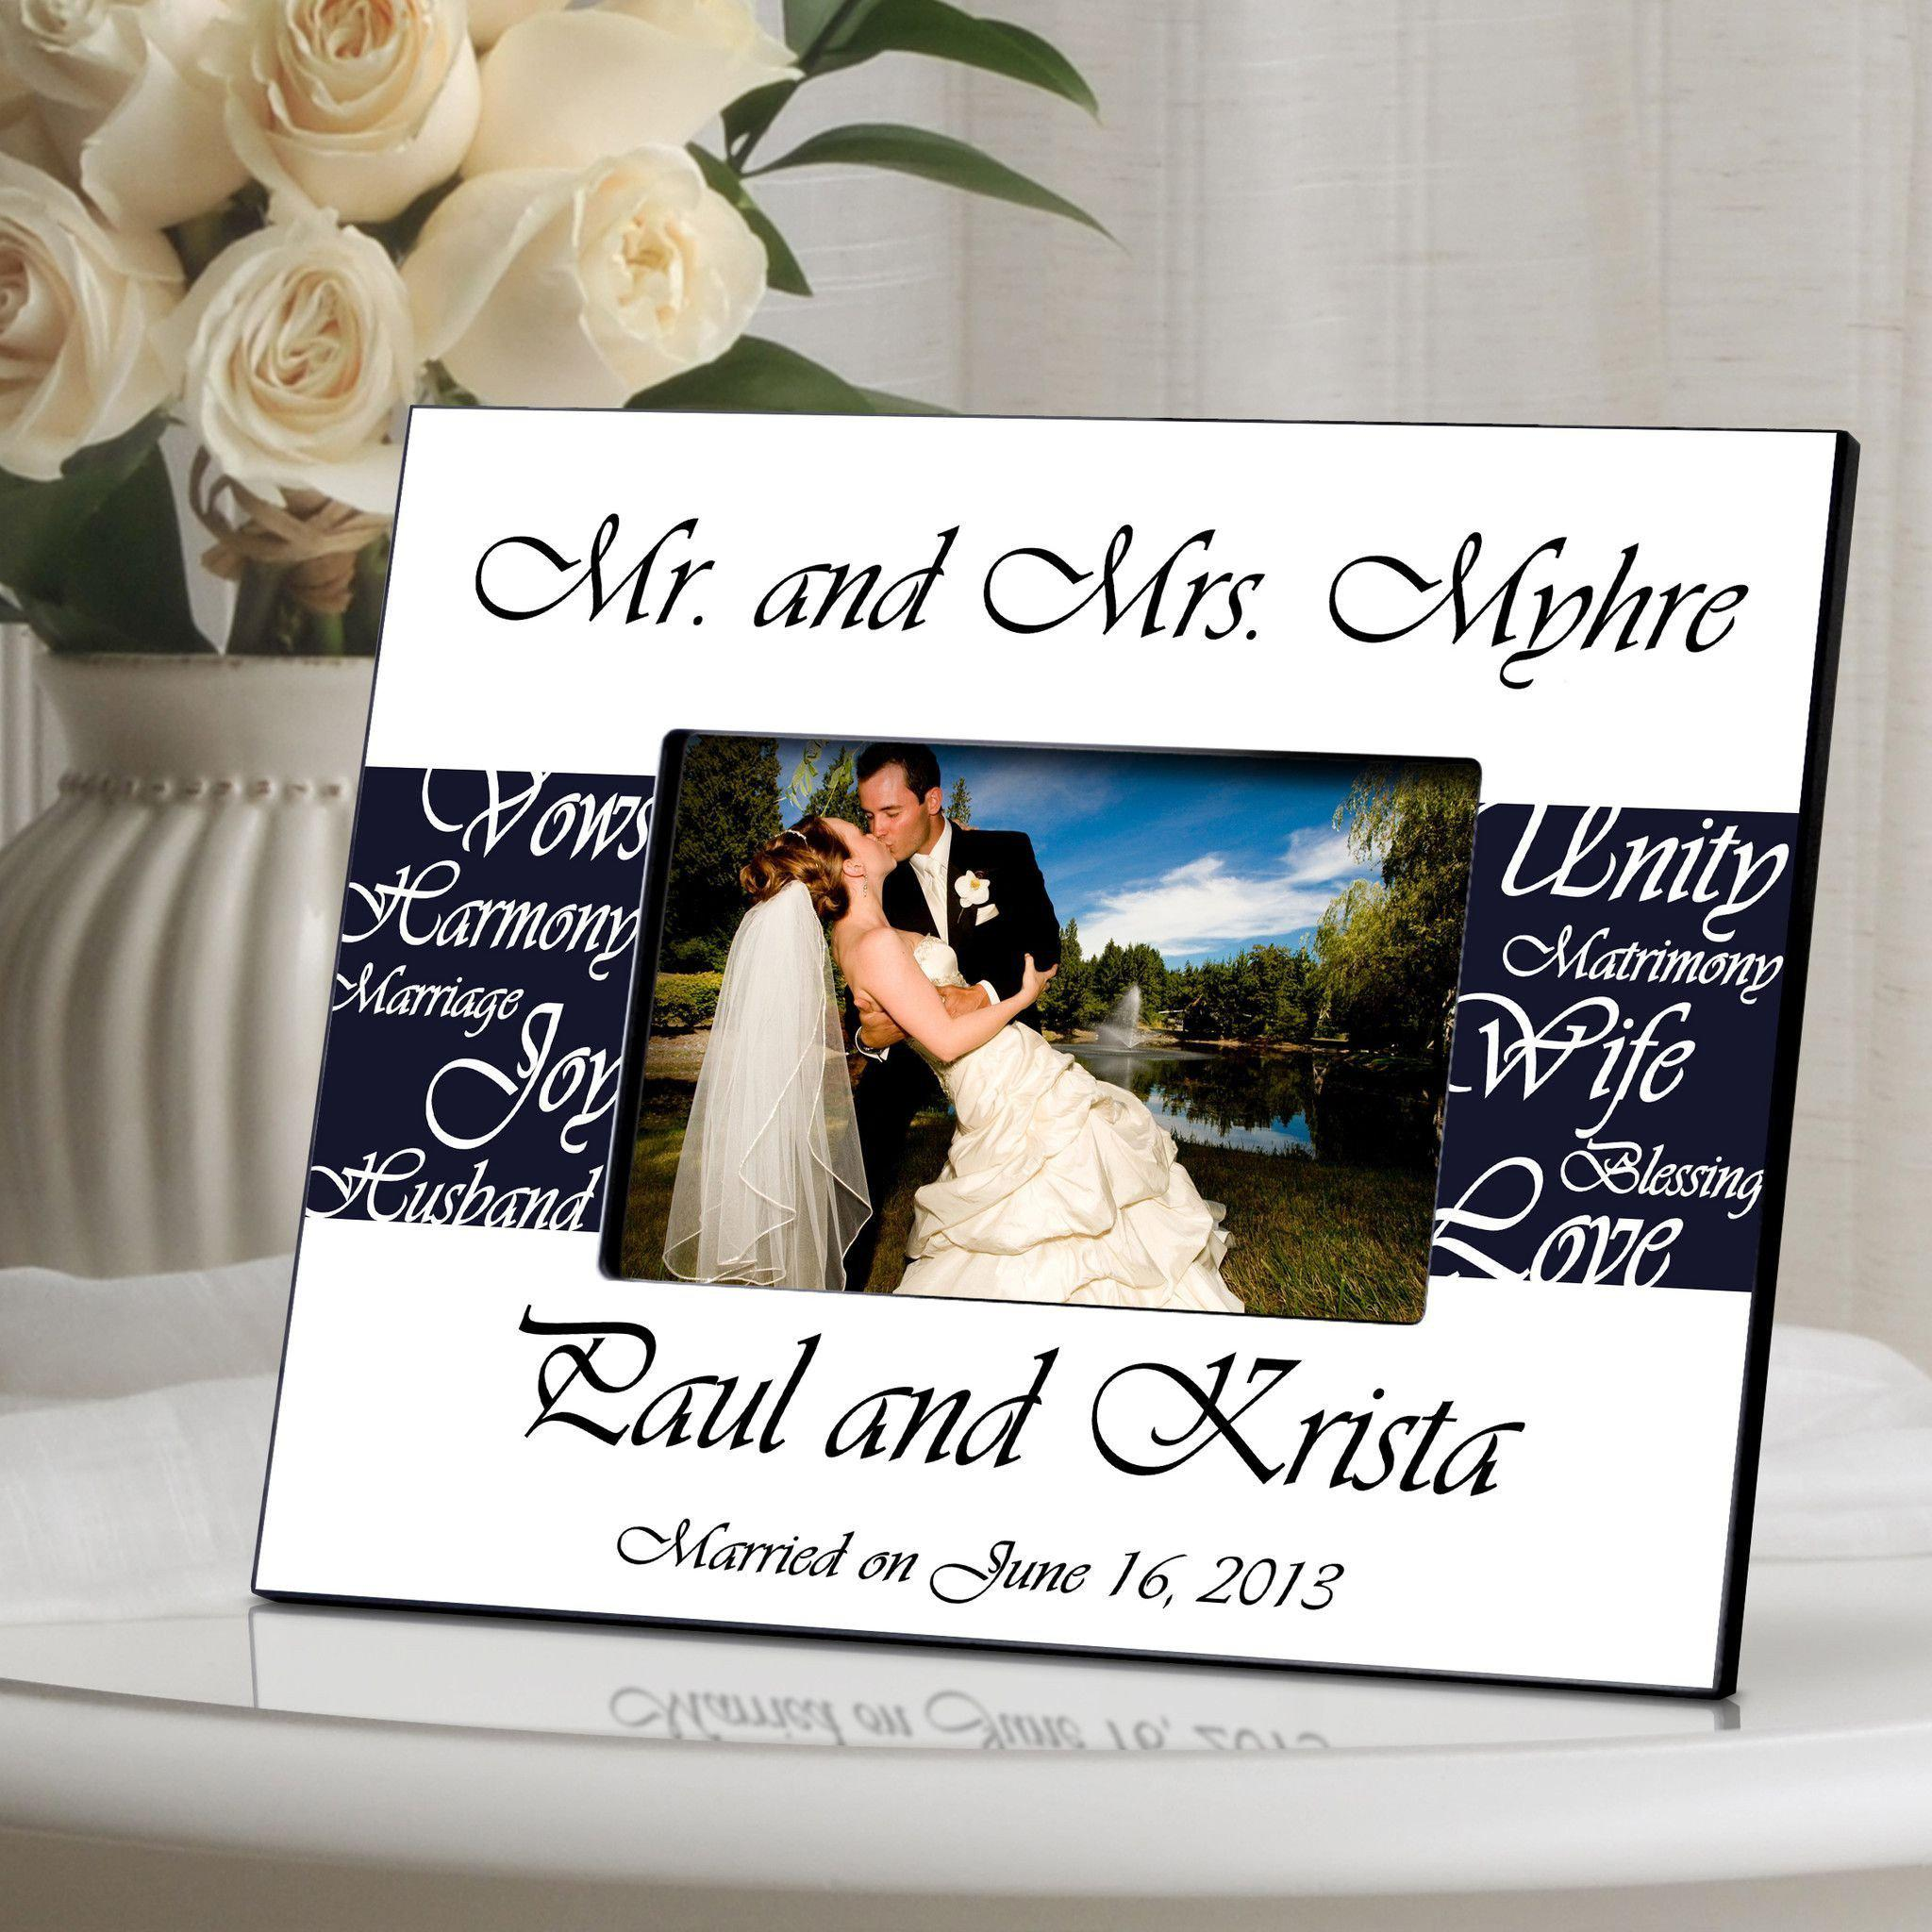 Average Cost Of Wedding Gift: Personalized Picture Frame